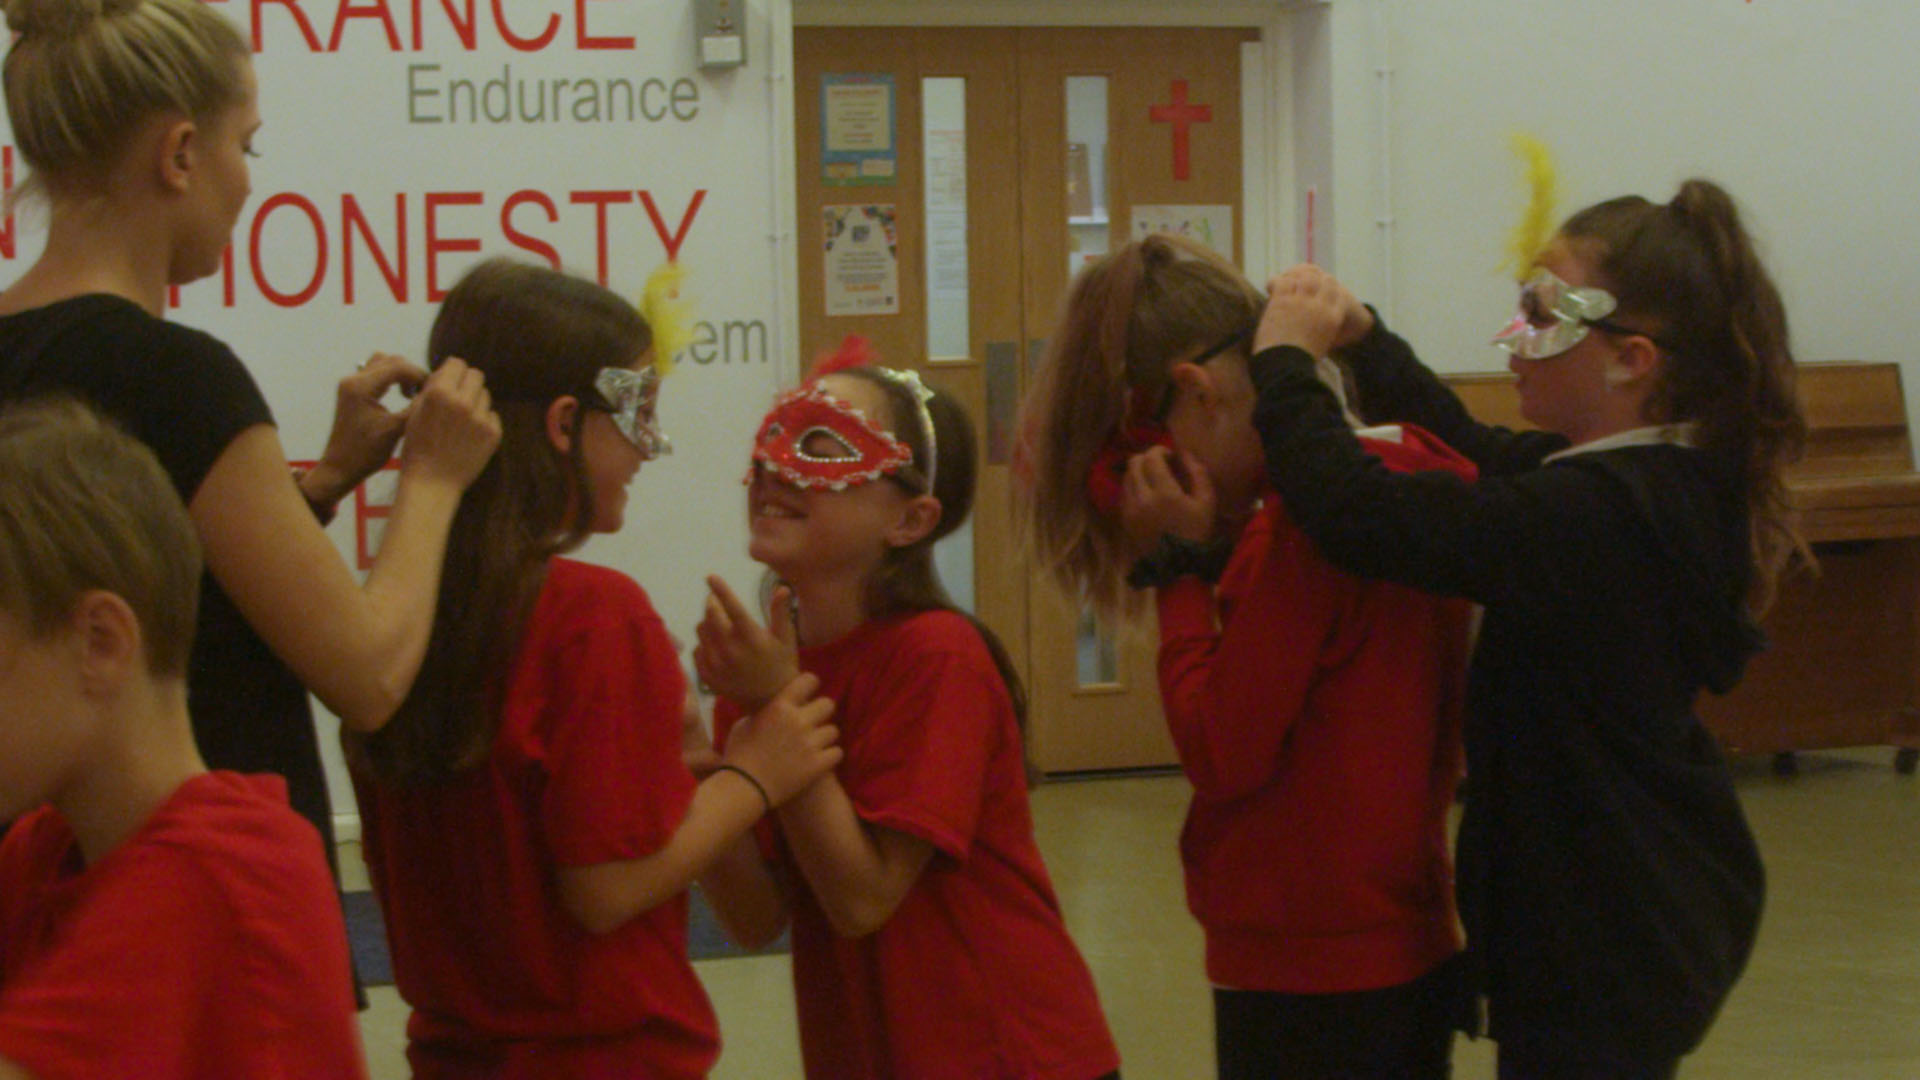 School children putting on masks for South American dance